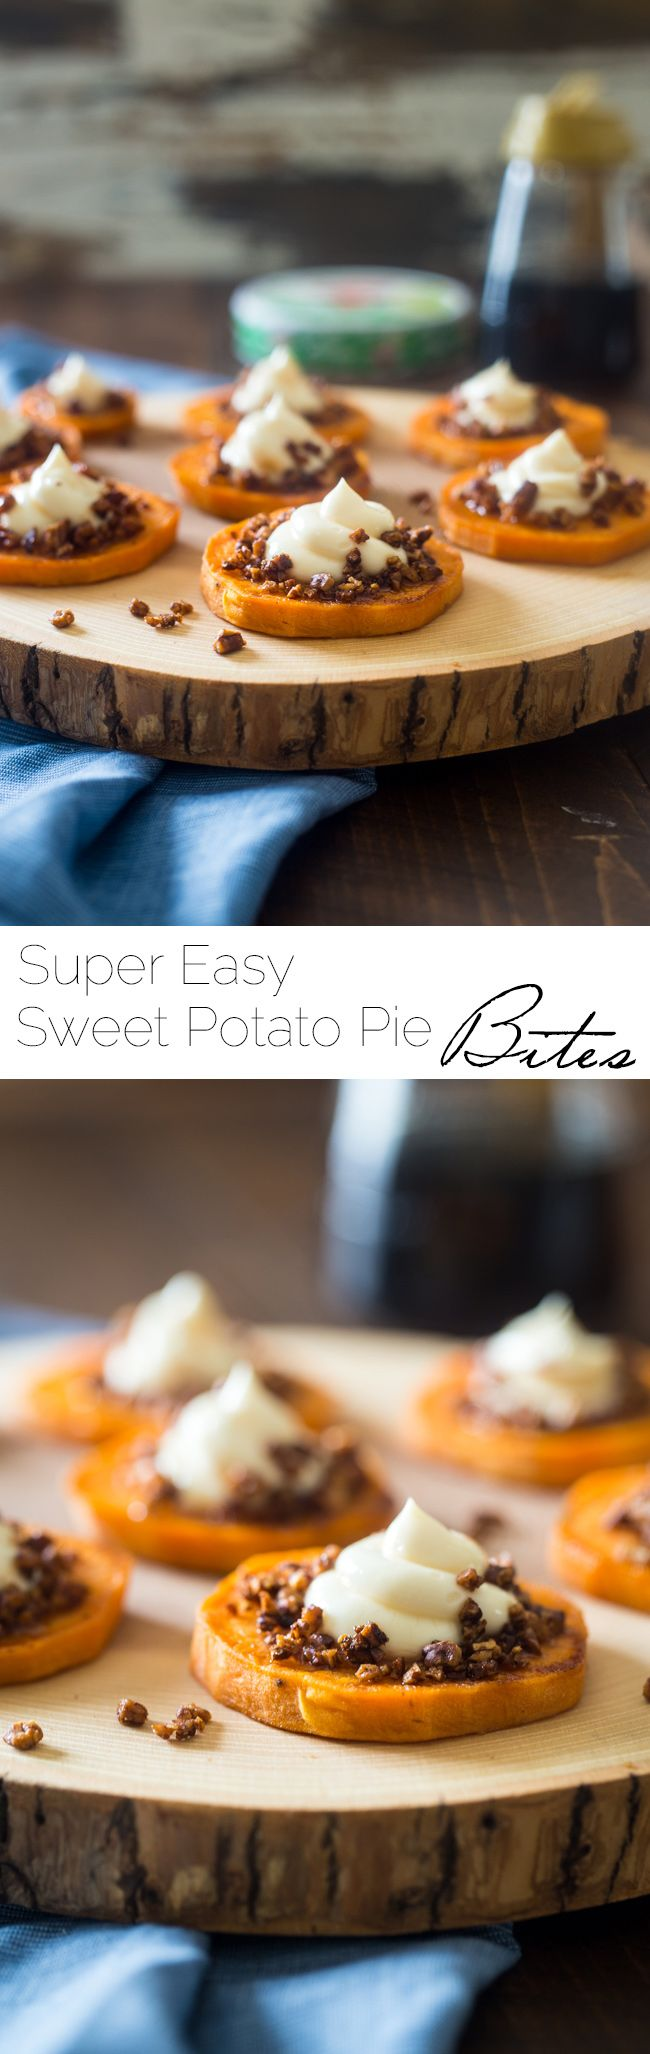 4 Ingredient Sweet Potato Pie Bites - These gluten free maple roasted sweet potato pie bites are a quick and easy snack or appetizer that tastes just like sweet potato pie, but are a whole easier to make! Perfect for Thanksgiving!   FoodFaithFitness.com   @FoodFaithFit #spon by @thelaughingcow